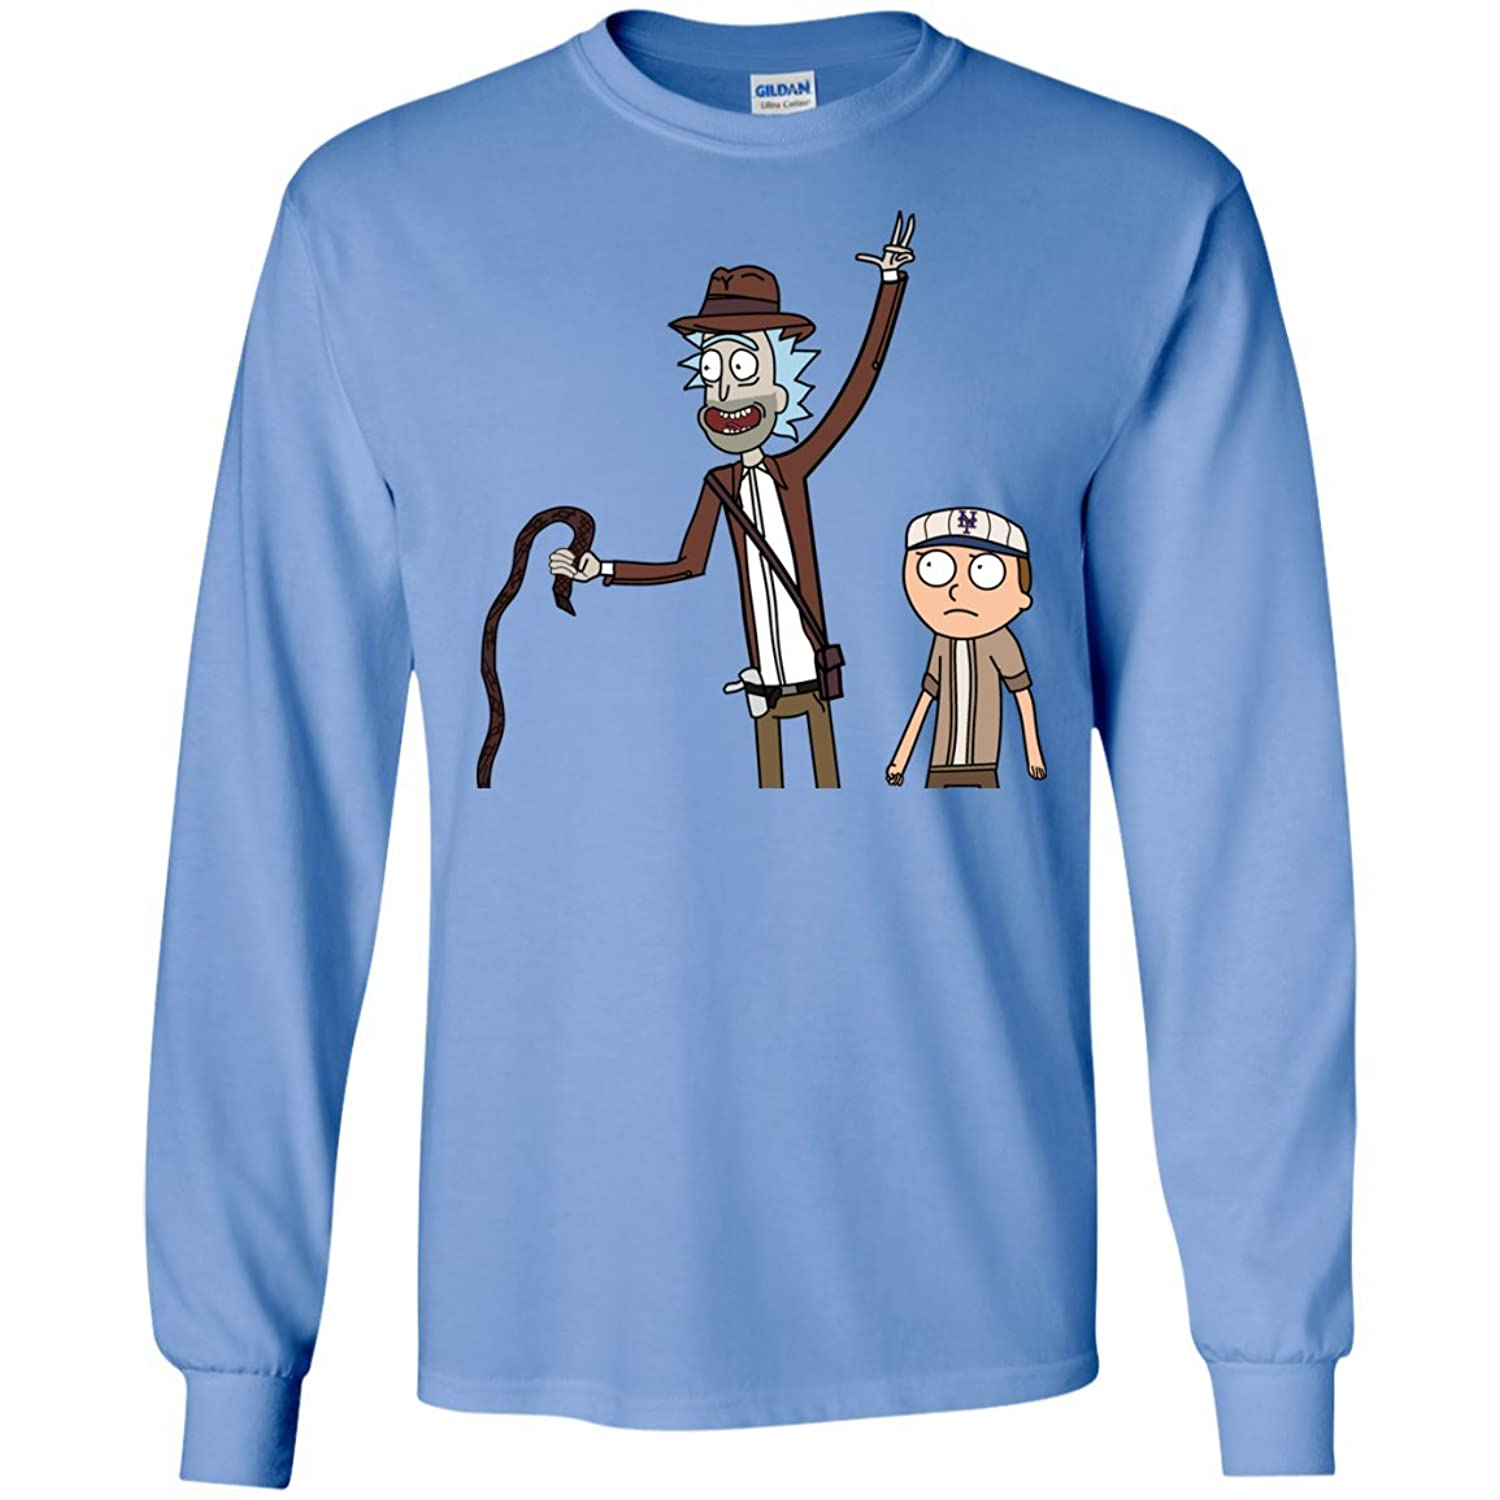 Rick and Morty Adventures Long Sleeves Tshirt